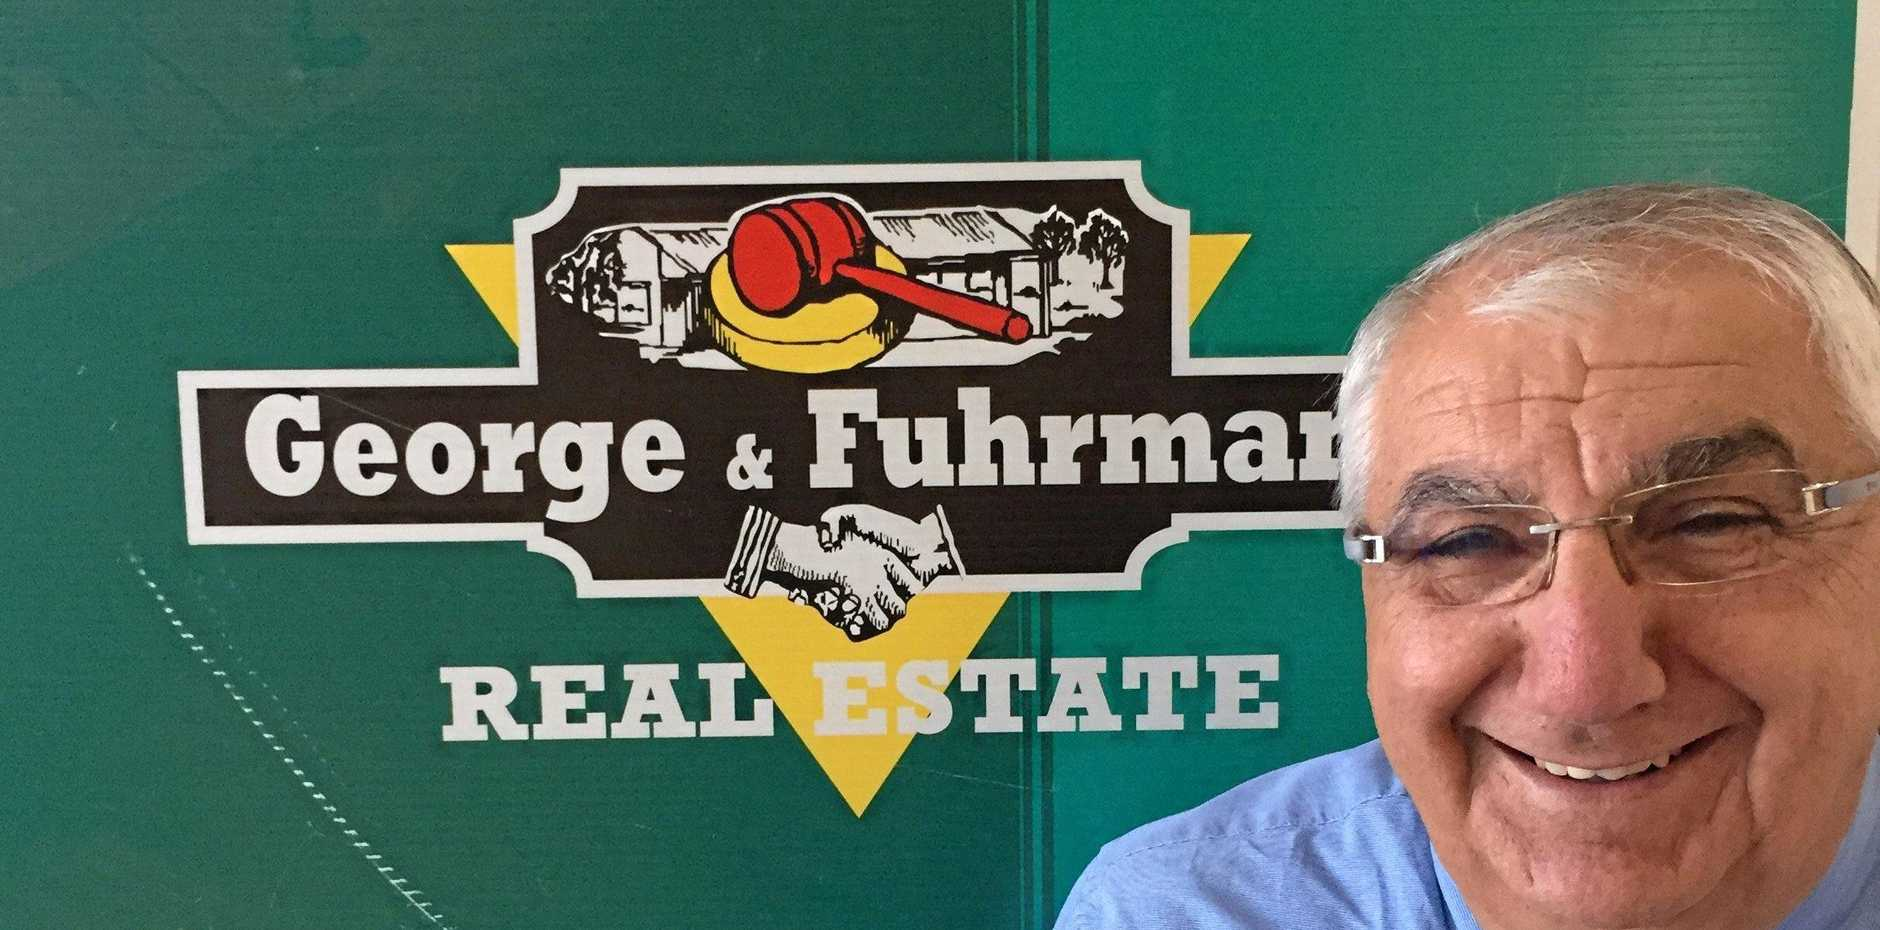 Thomas George MP, member for Lismore, visits George & Fuhrmann Real Estate Agents in Casino where his career began.